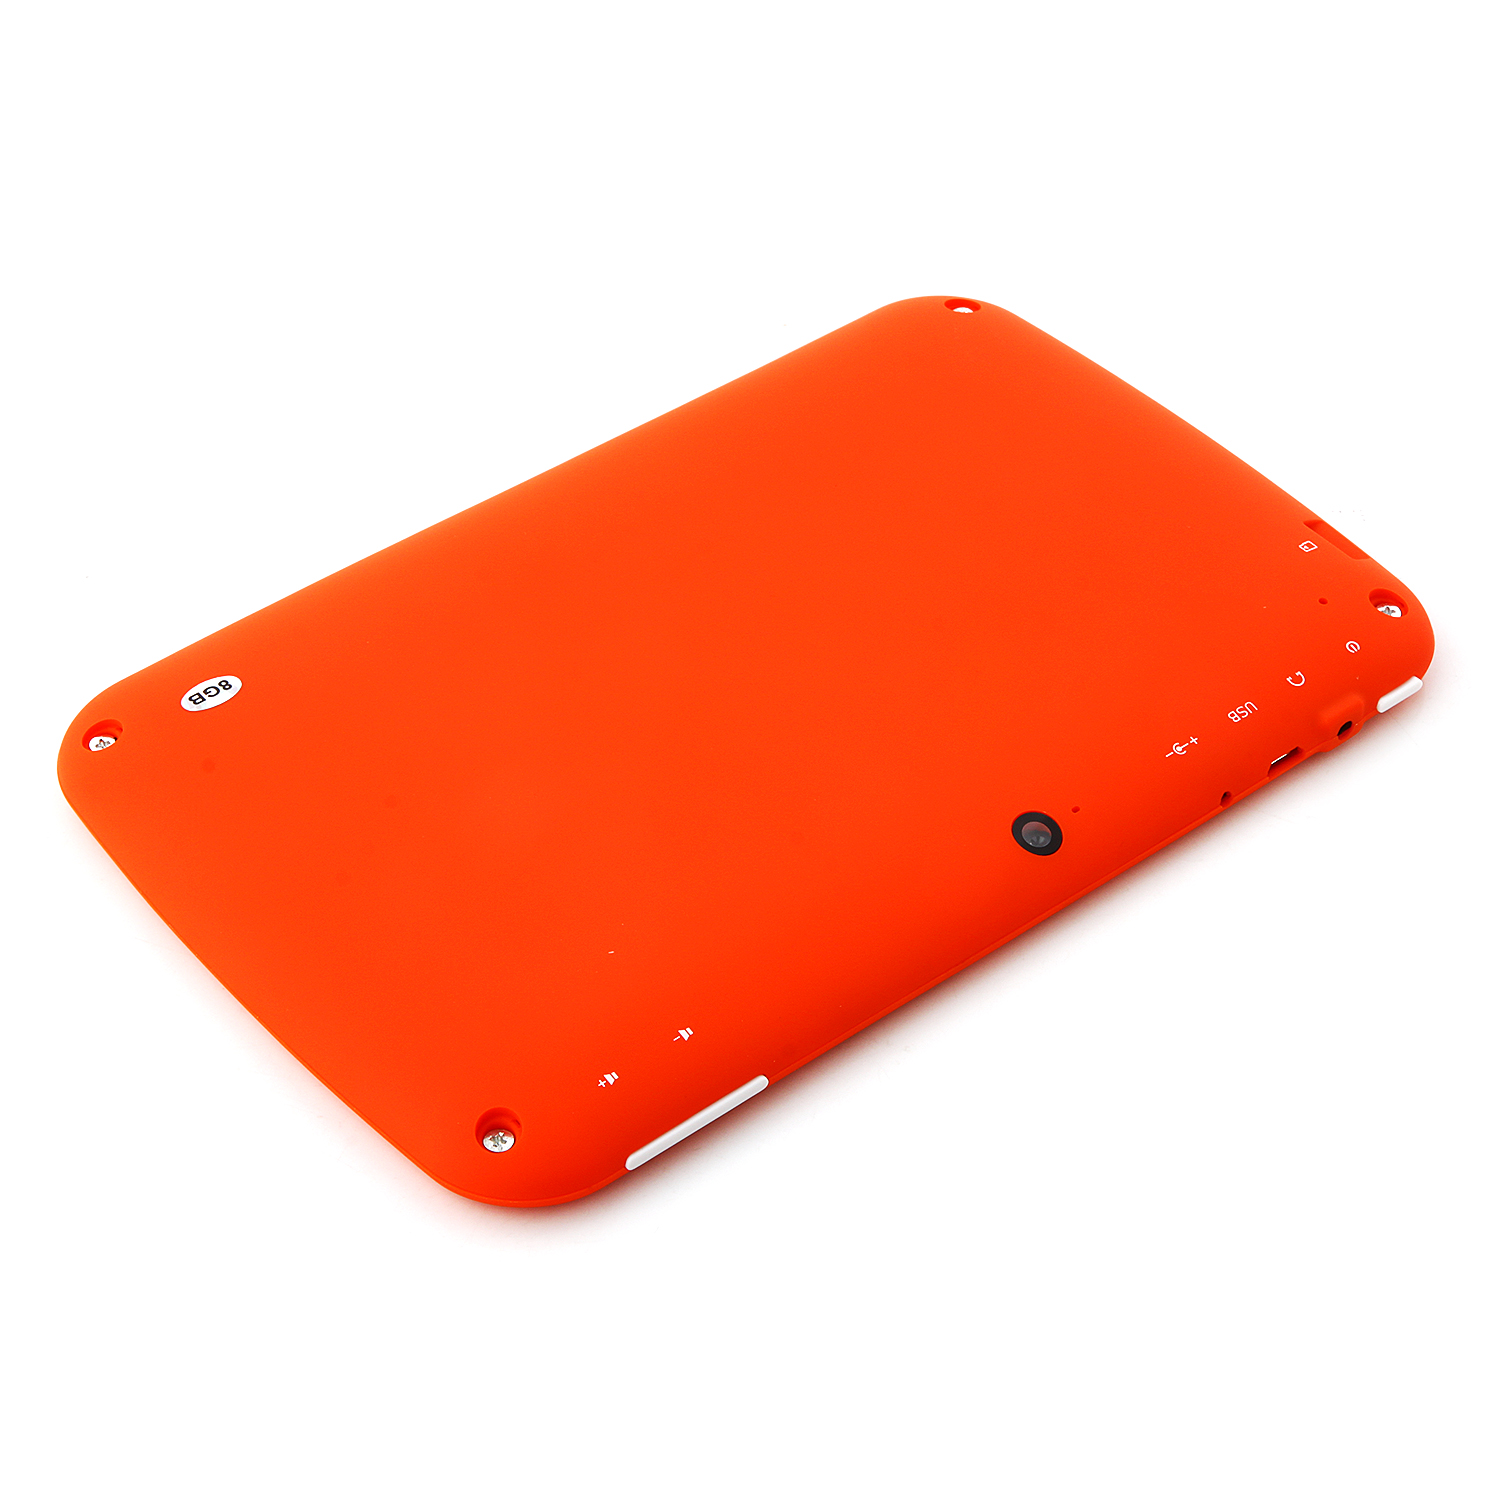 MTP346 R70AC-D KIDS Tablet PC Quad Core RK3126 1.2GHz 7.0 Inch Android 4.4 8GB Orange